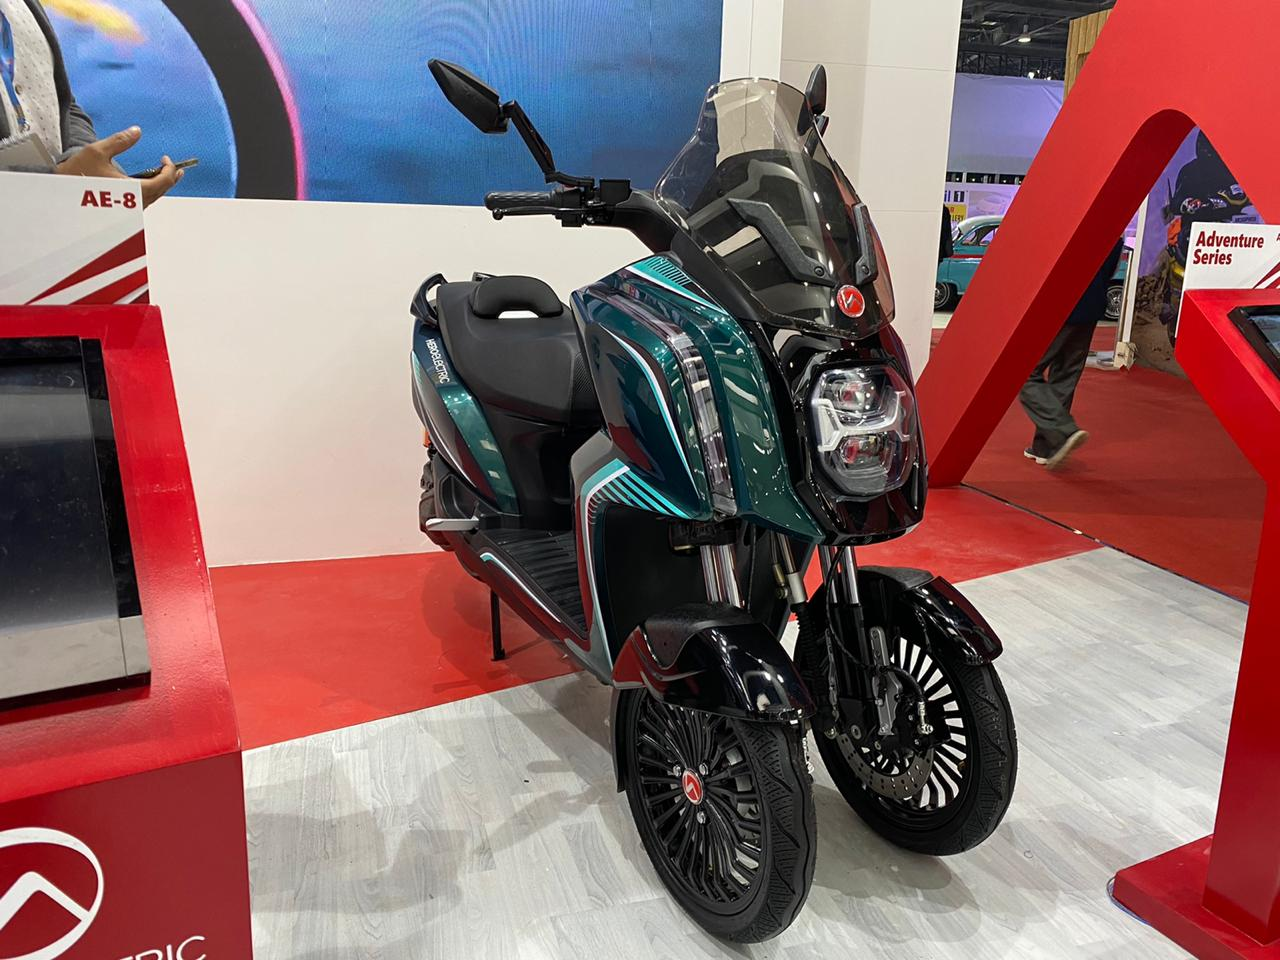 Hero Electric Ae 3 Estimated Price Launch Date 2021 Images Specs Mileage